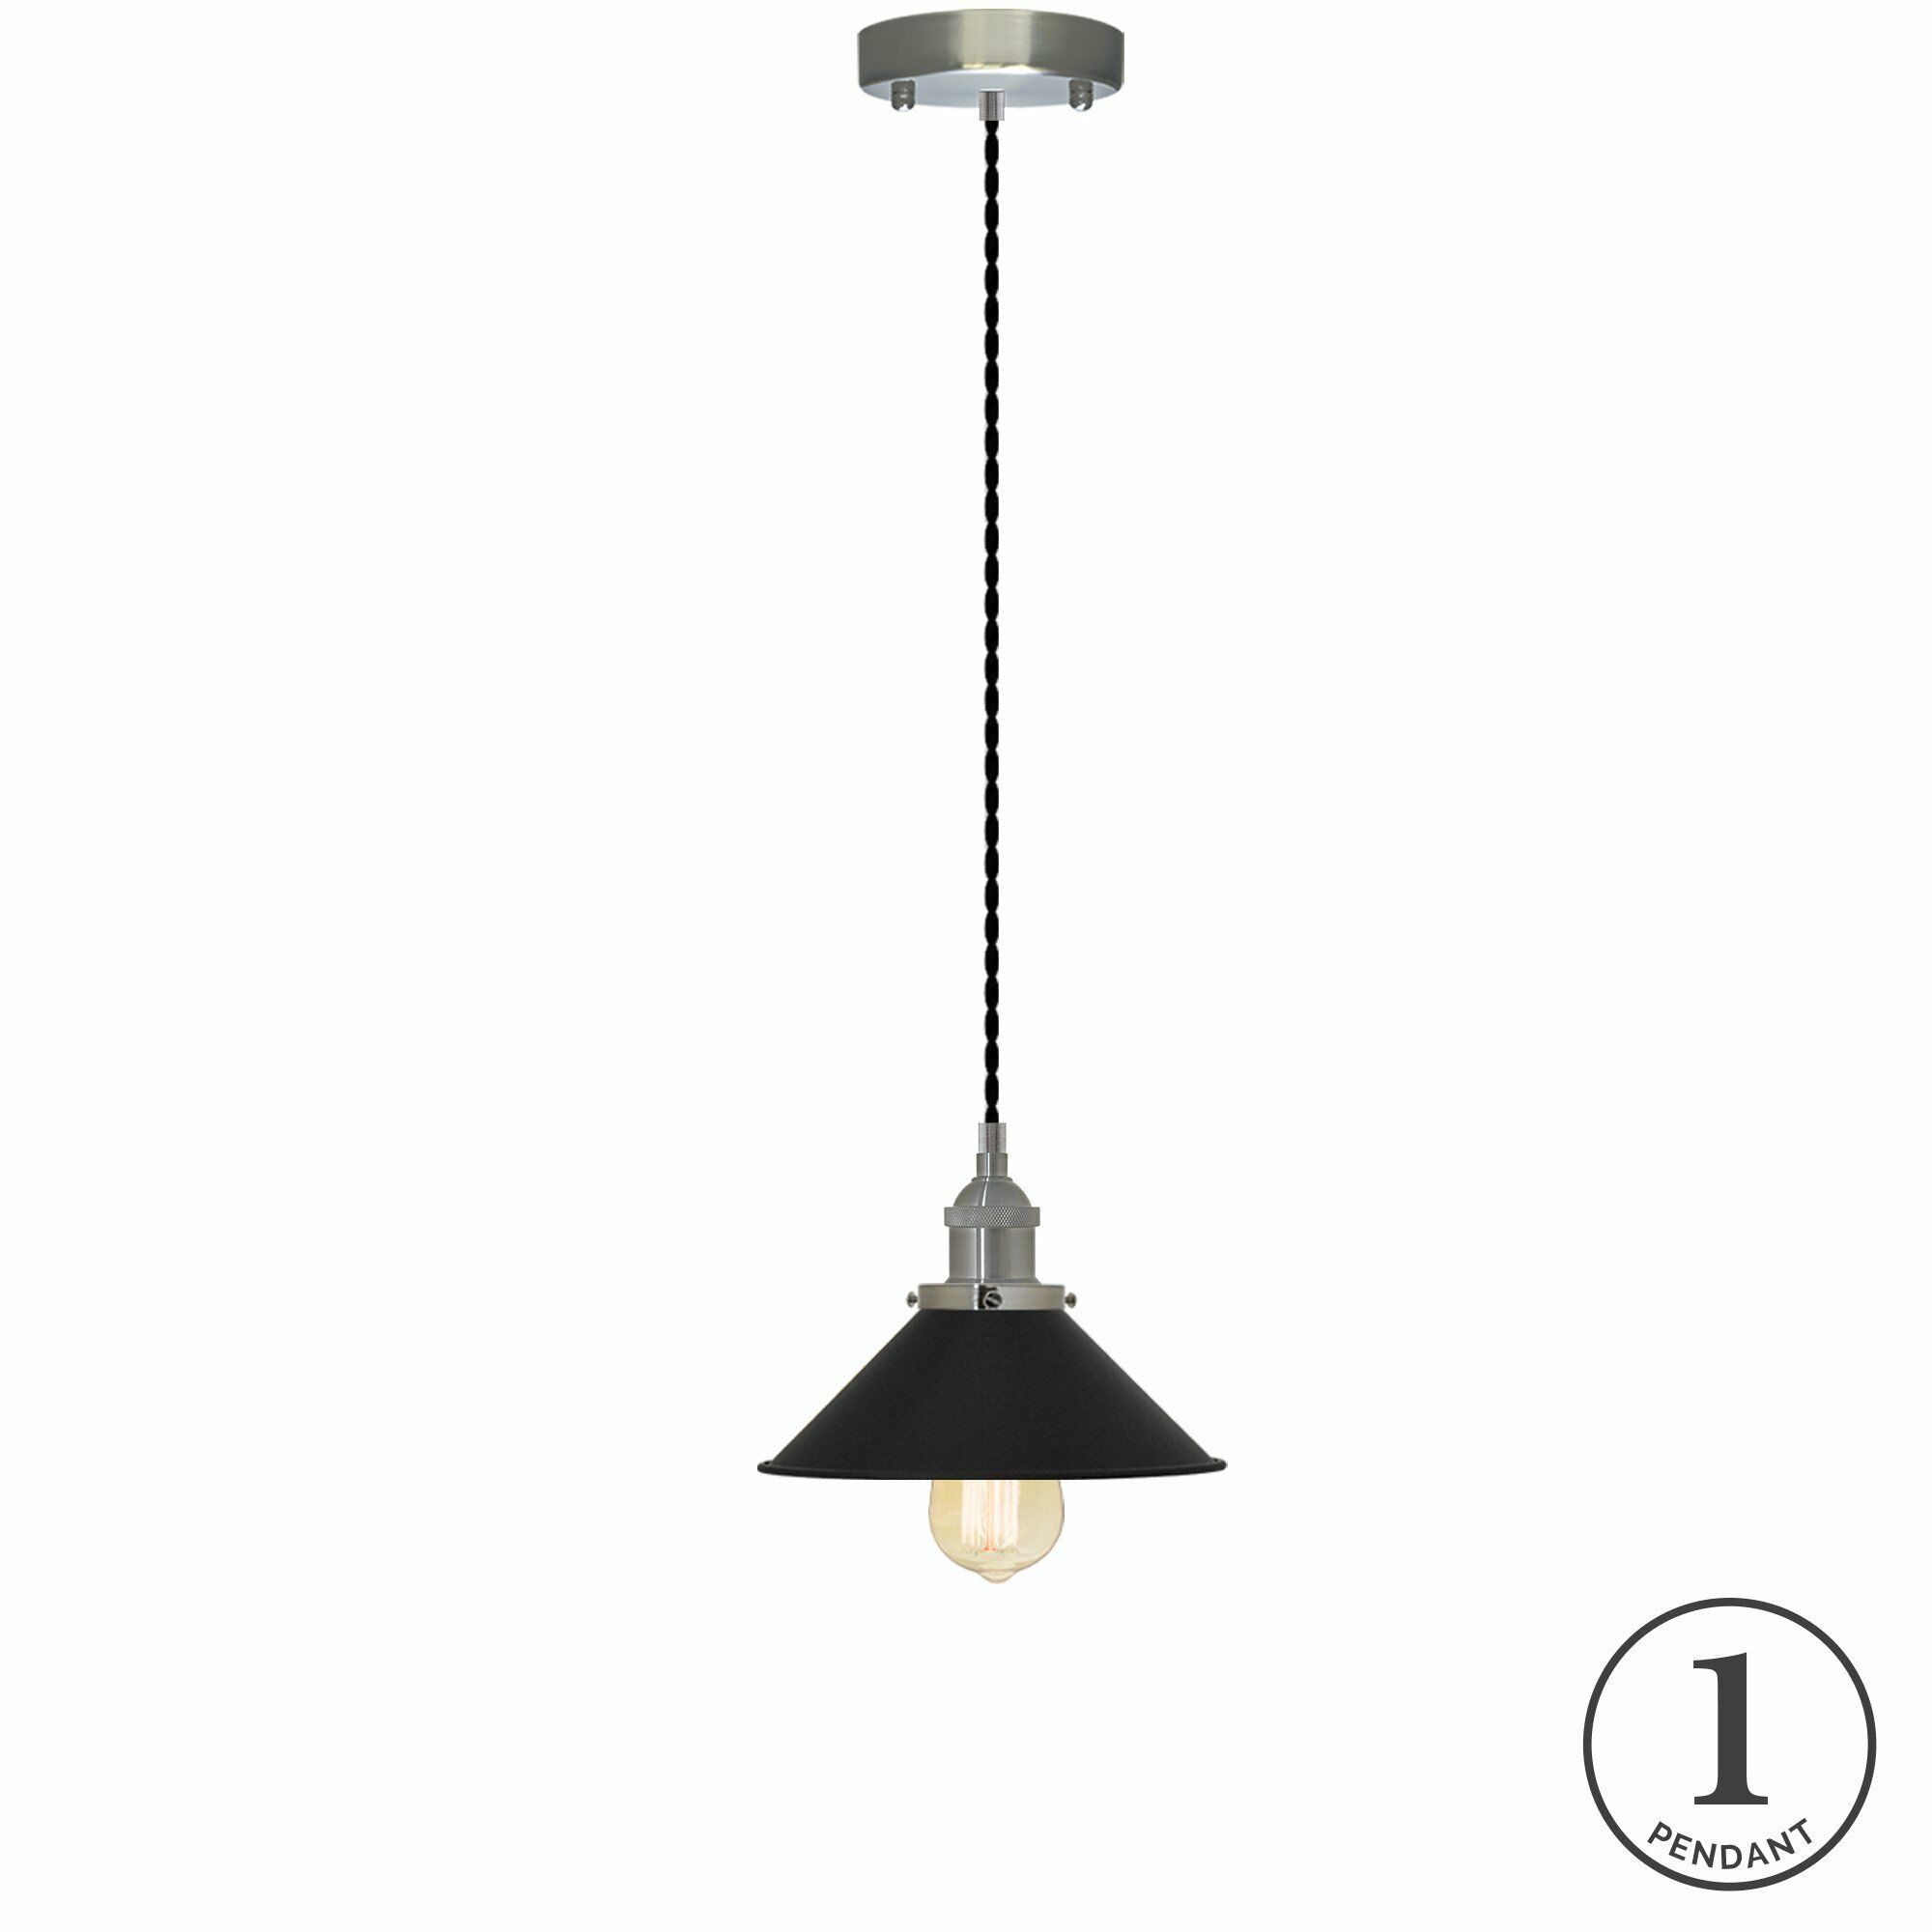 Savannah 1-Light Cone Pendant Finish: Black, Shade Color: Nickel